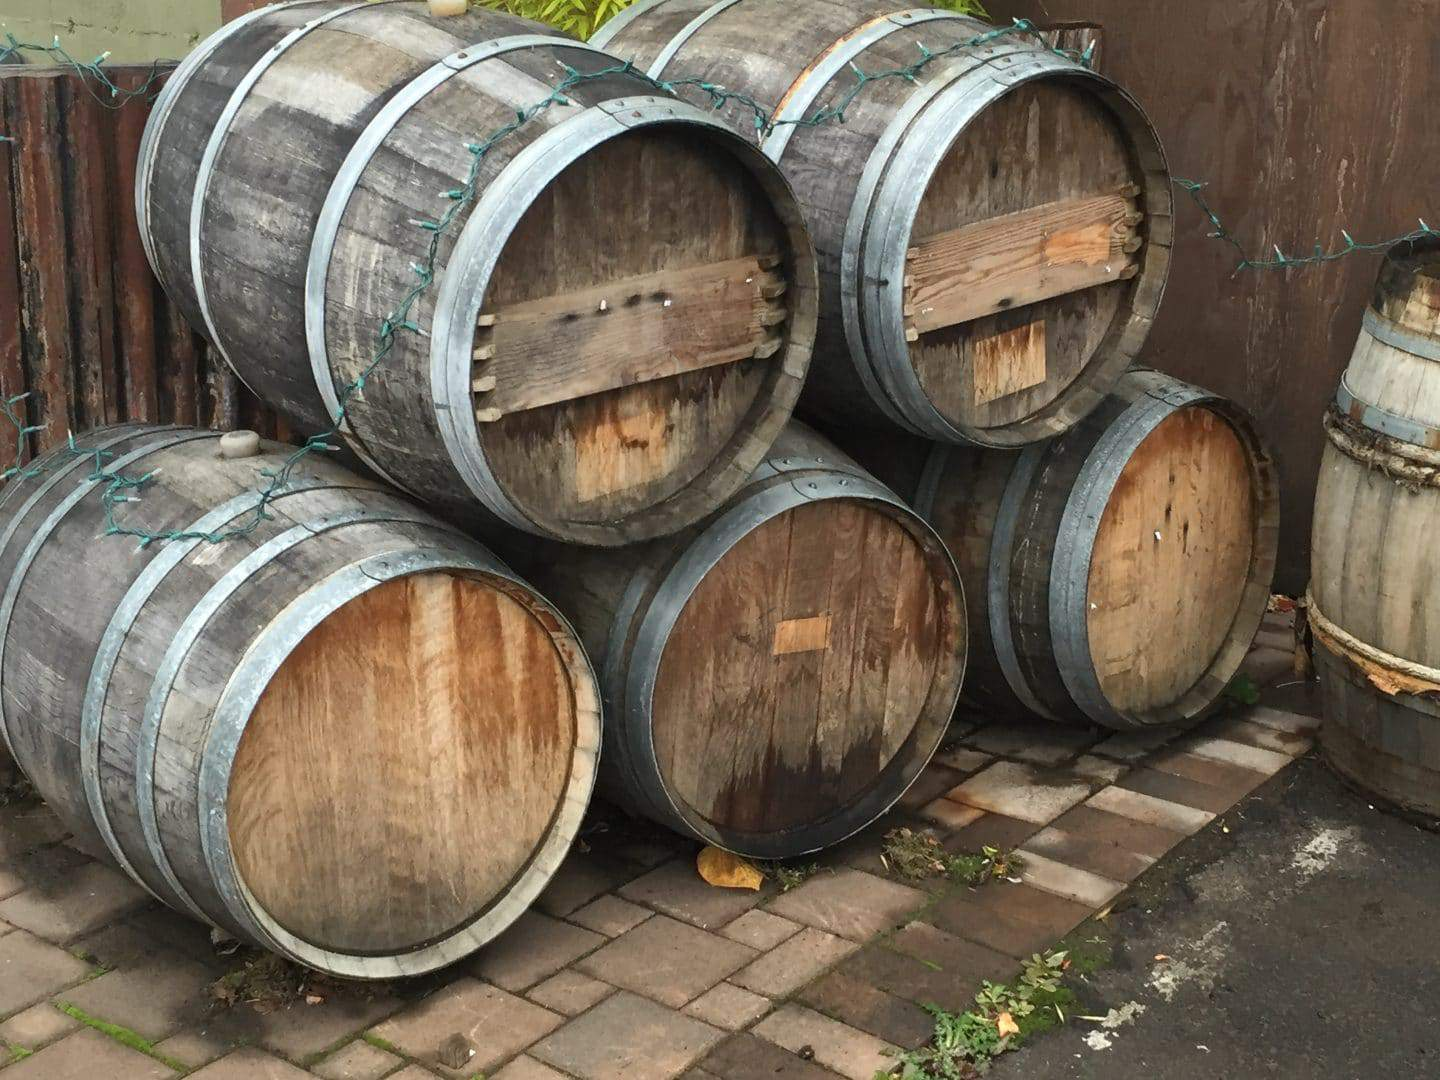 California wine barrels